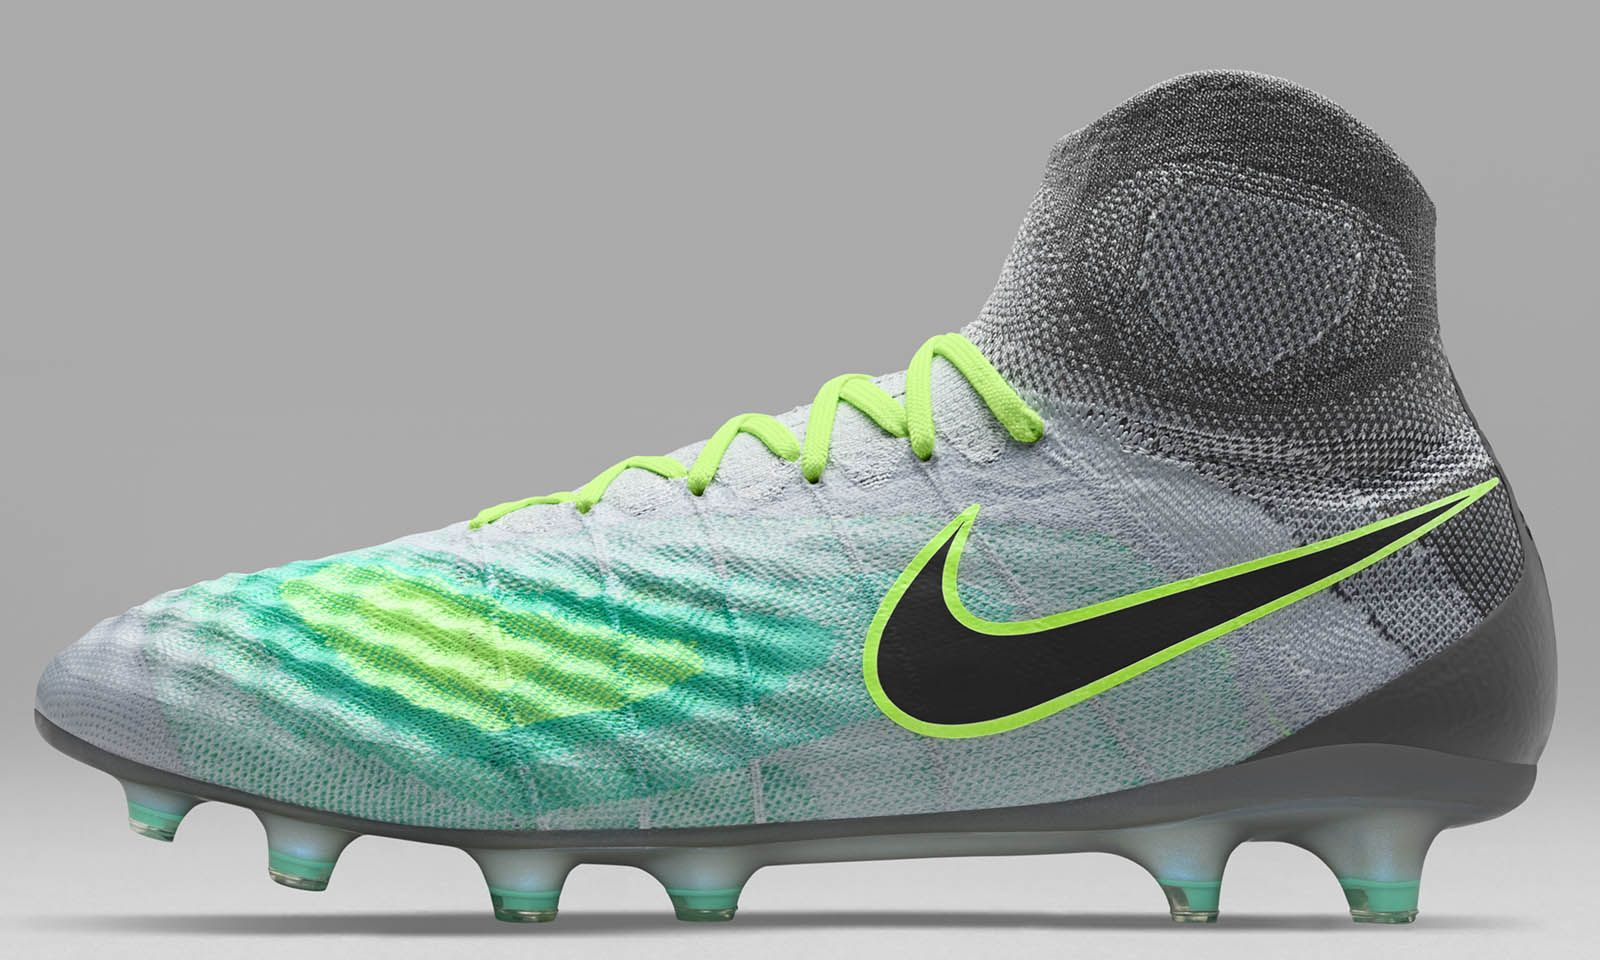 7d56a7893f8c The Pure Platinum Nike Magista Obra II football boots introduce an  understated-yet-bold look for the second-gen Nike Magista cleats